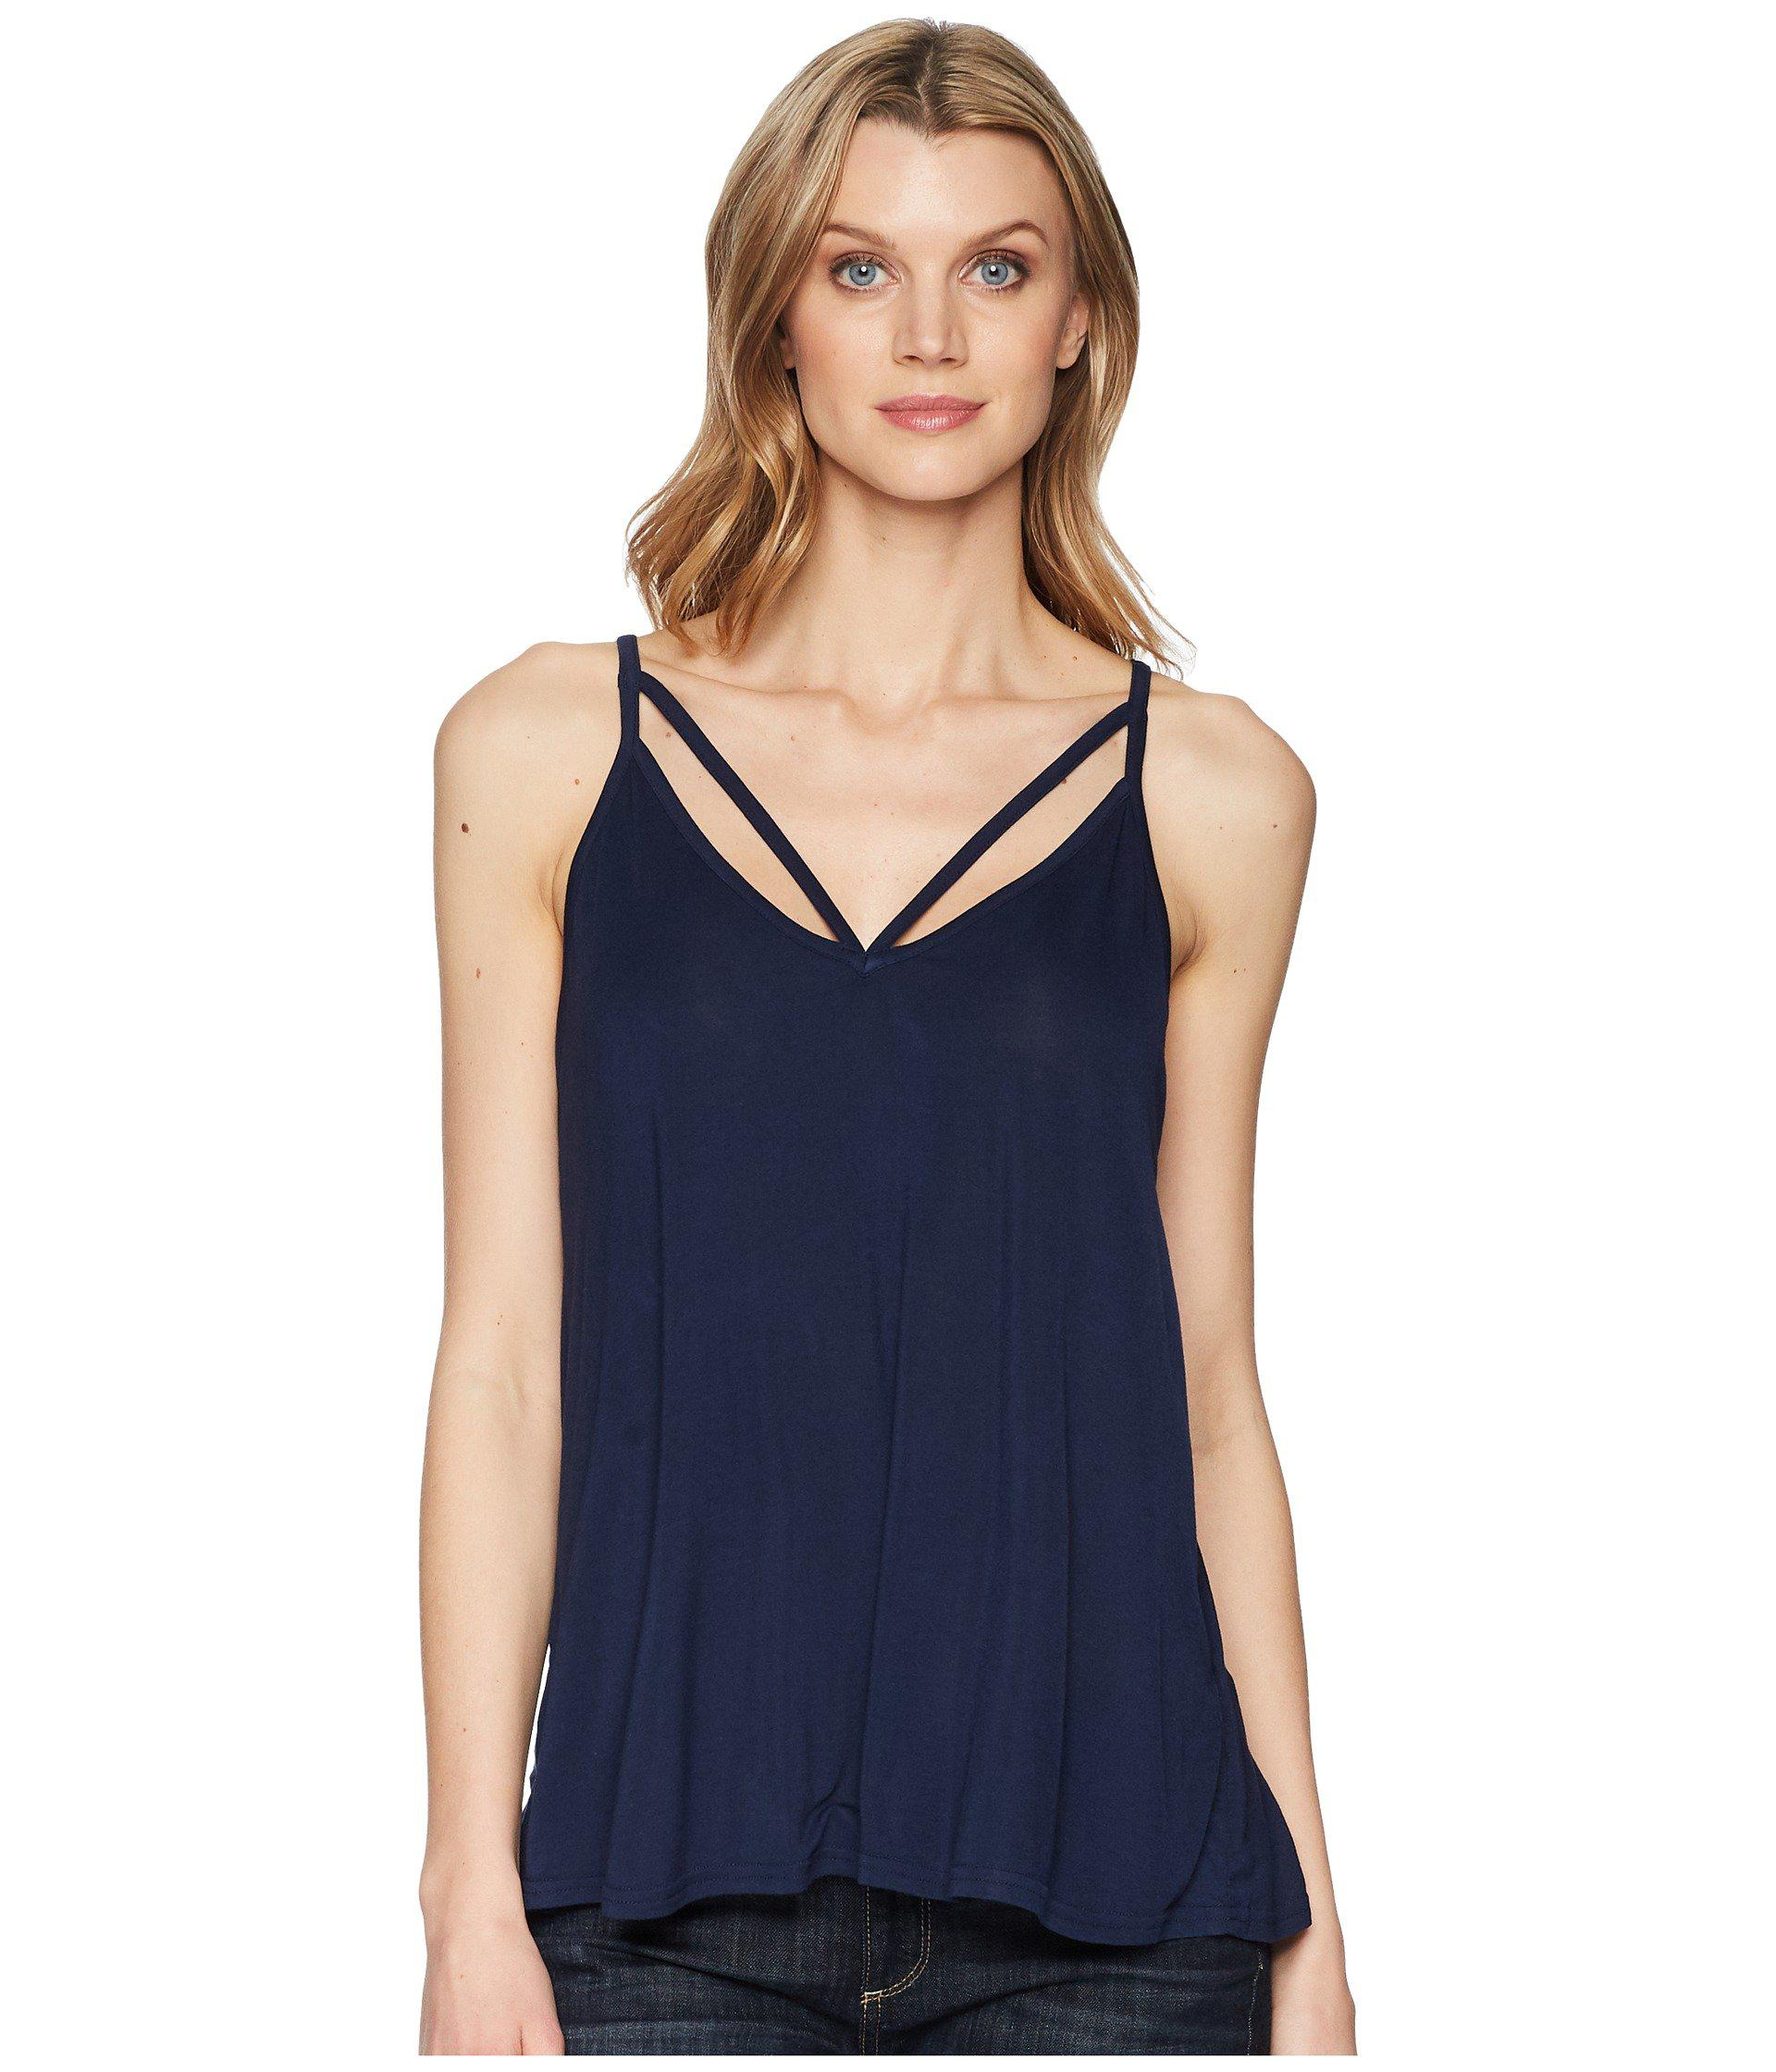 8ce880a366044 Lyst - Stetson 1578 Rayon Knit V-neck Strappy Tank Top in Blue ...